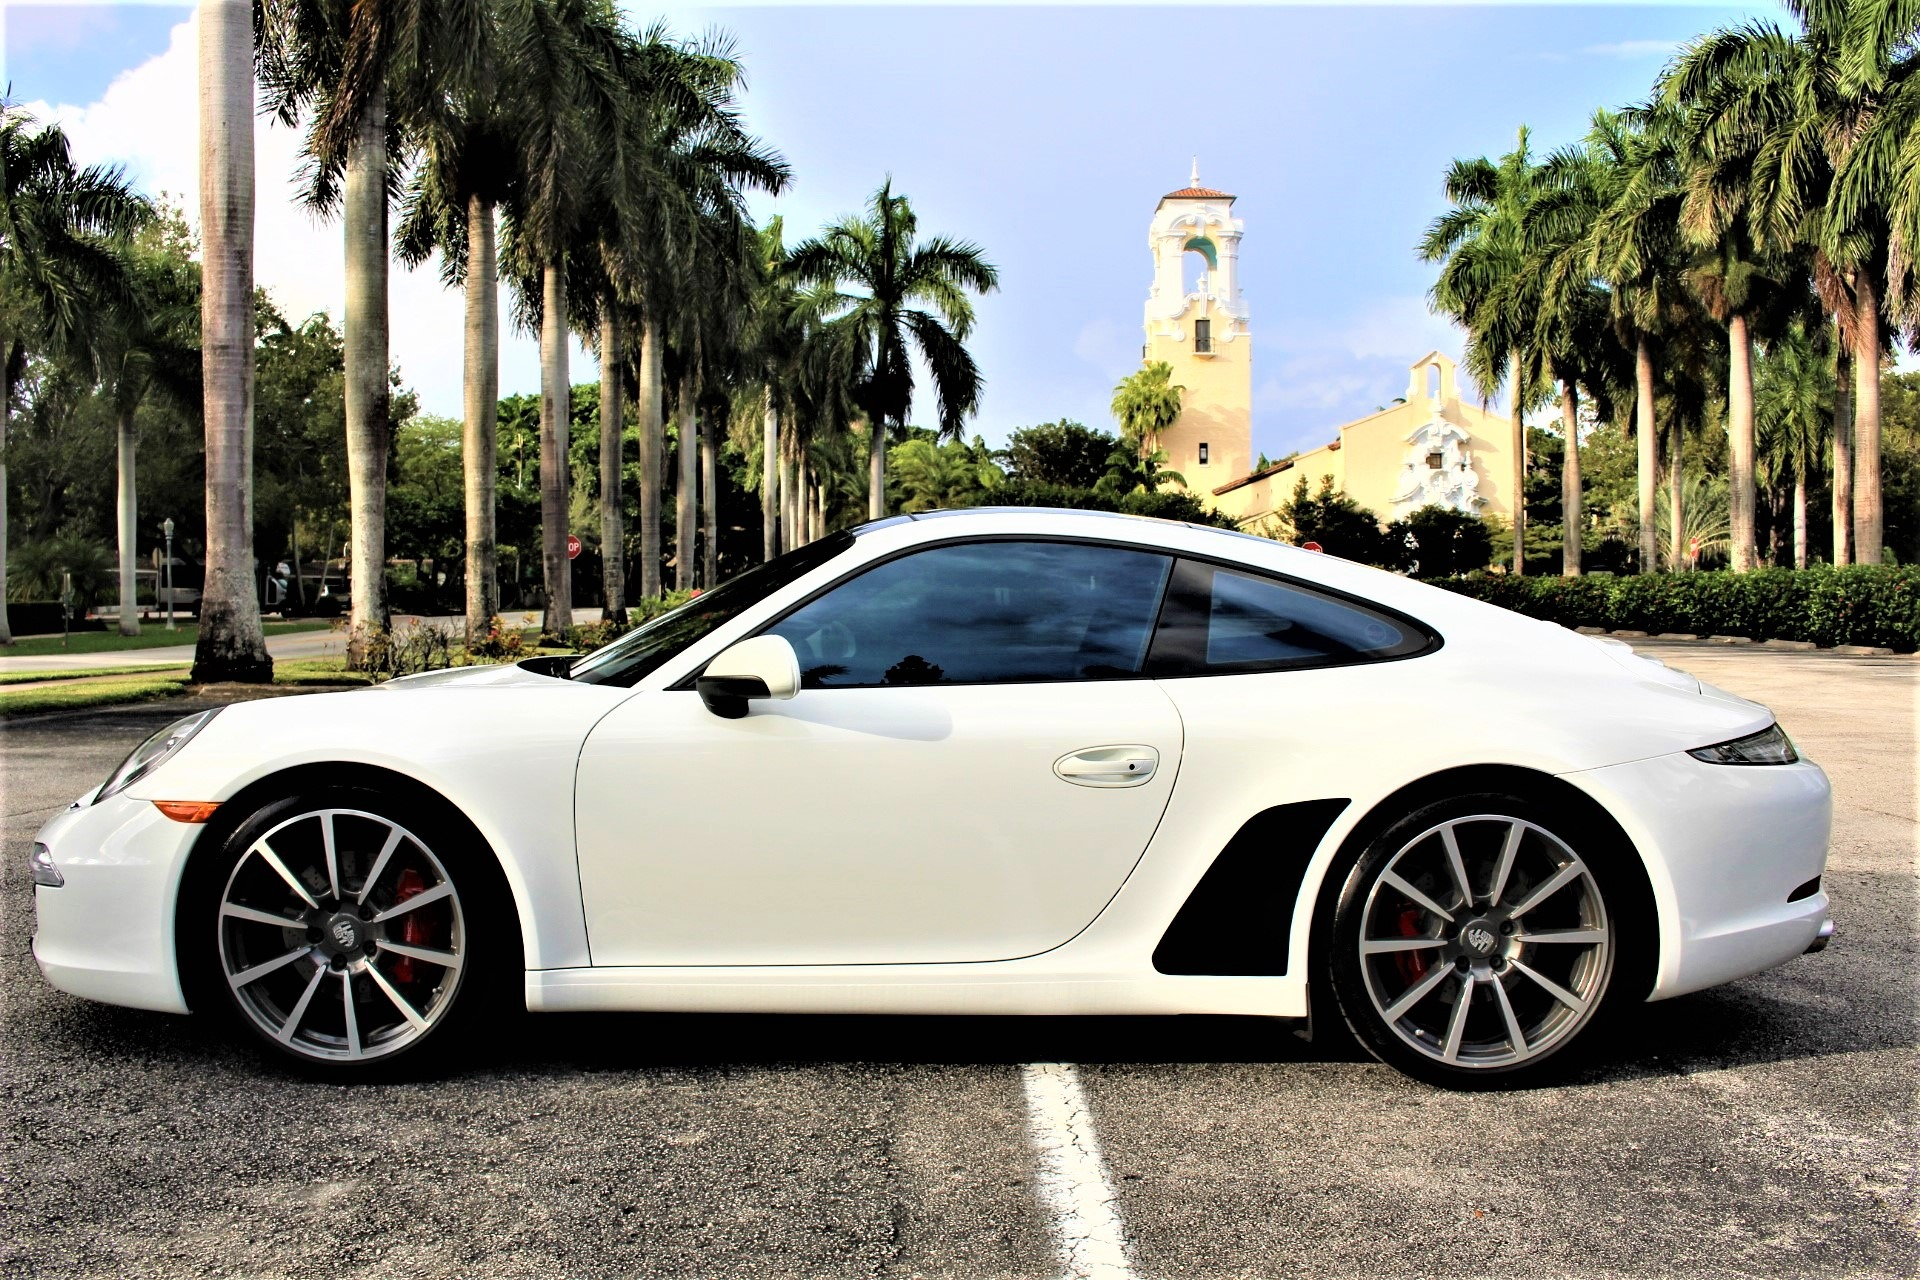 Used 2014 Porsche 911 Carrera S for sale $69,850 at The Gables Sports Cars in Miami FL 33146 4